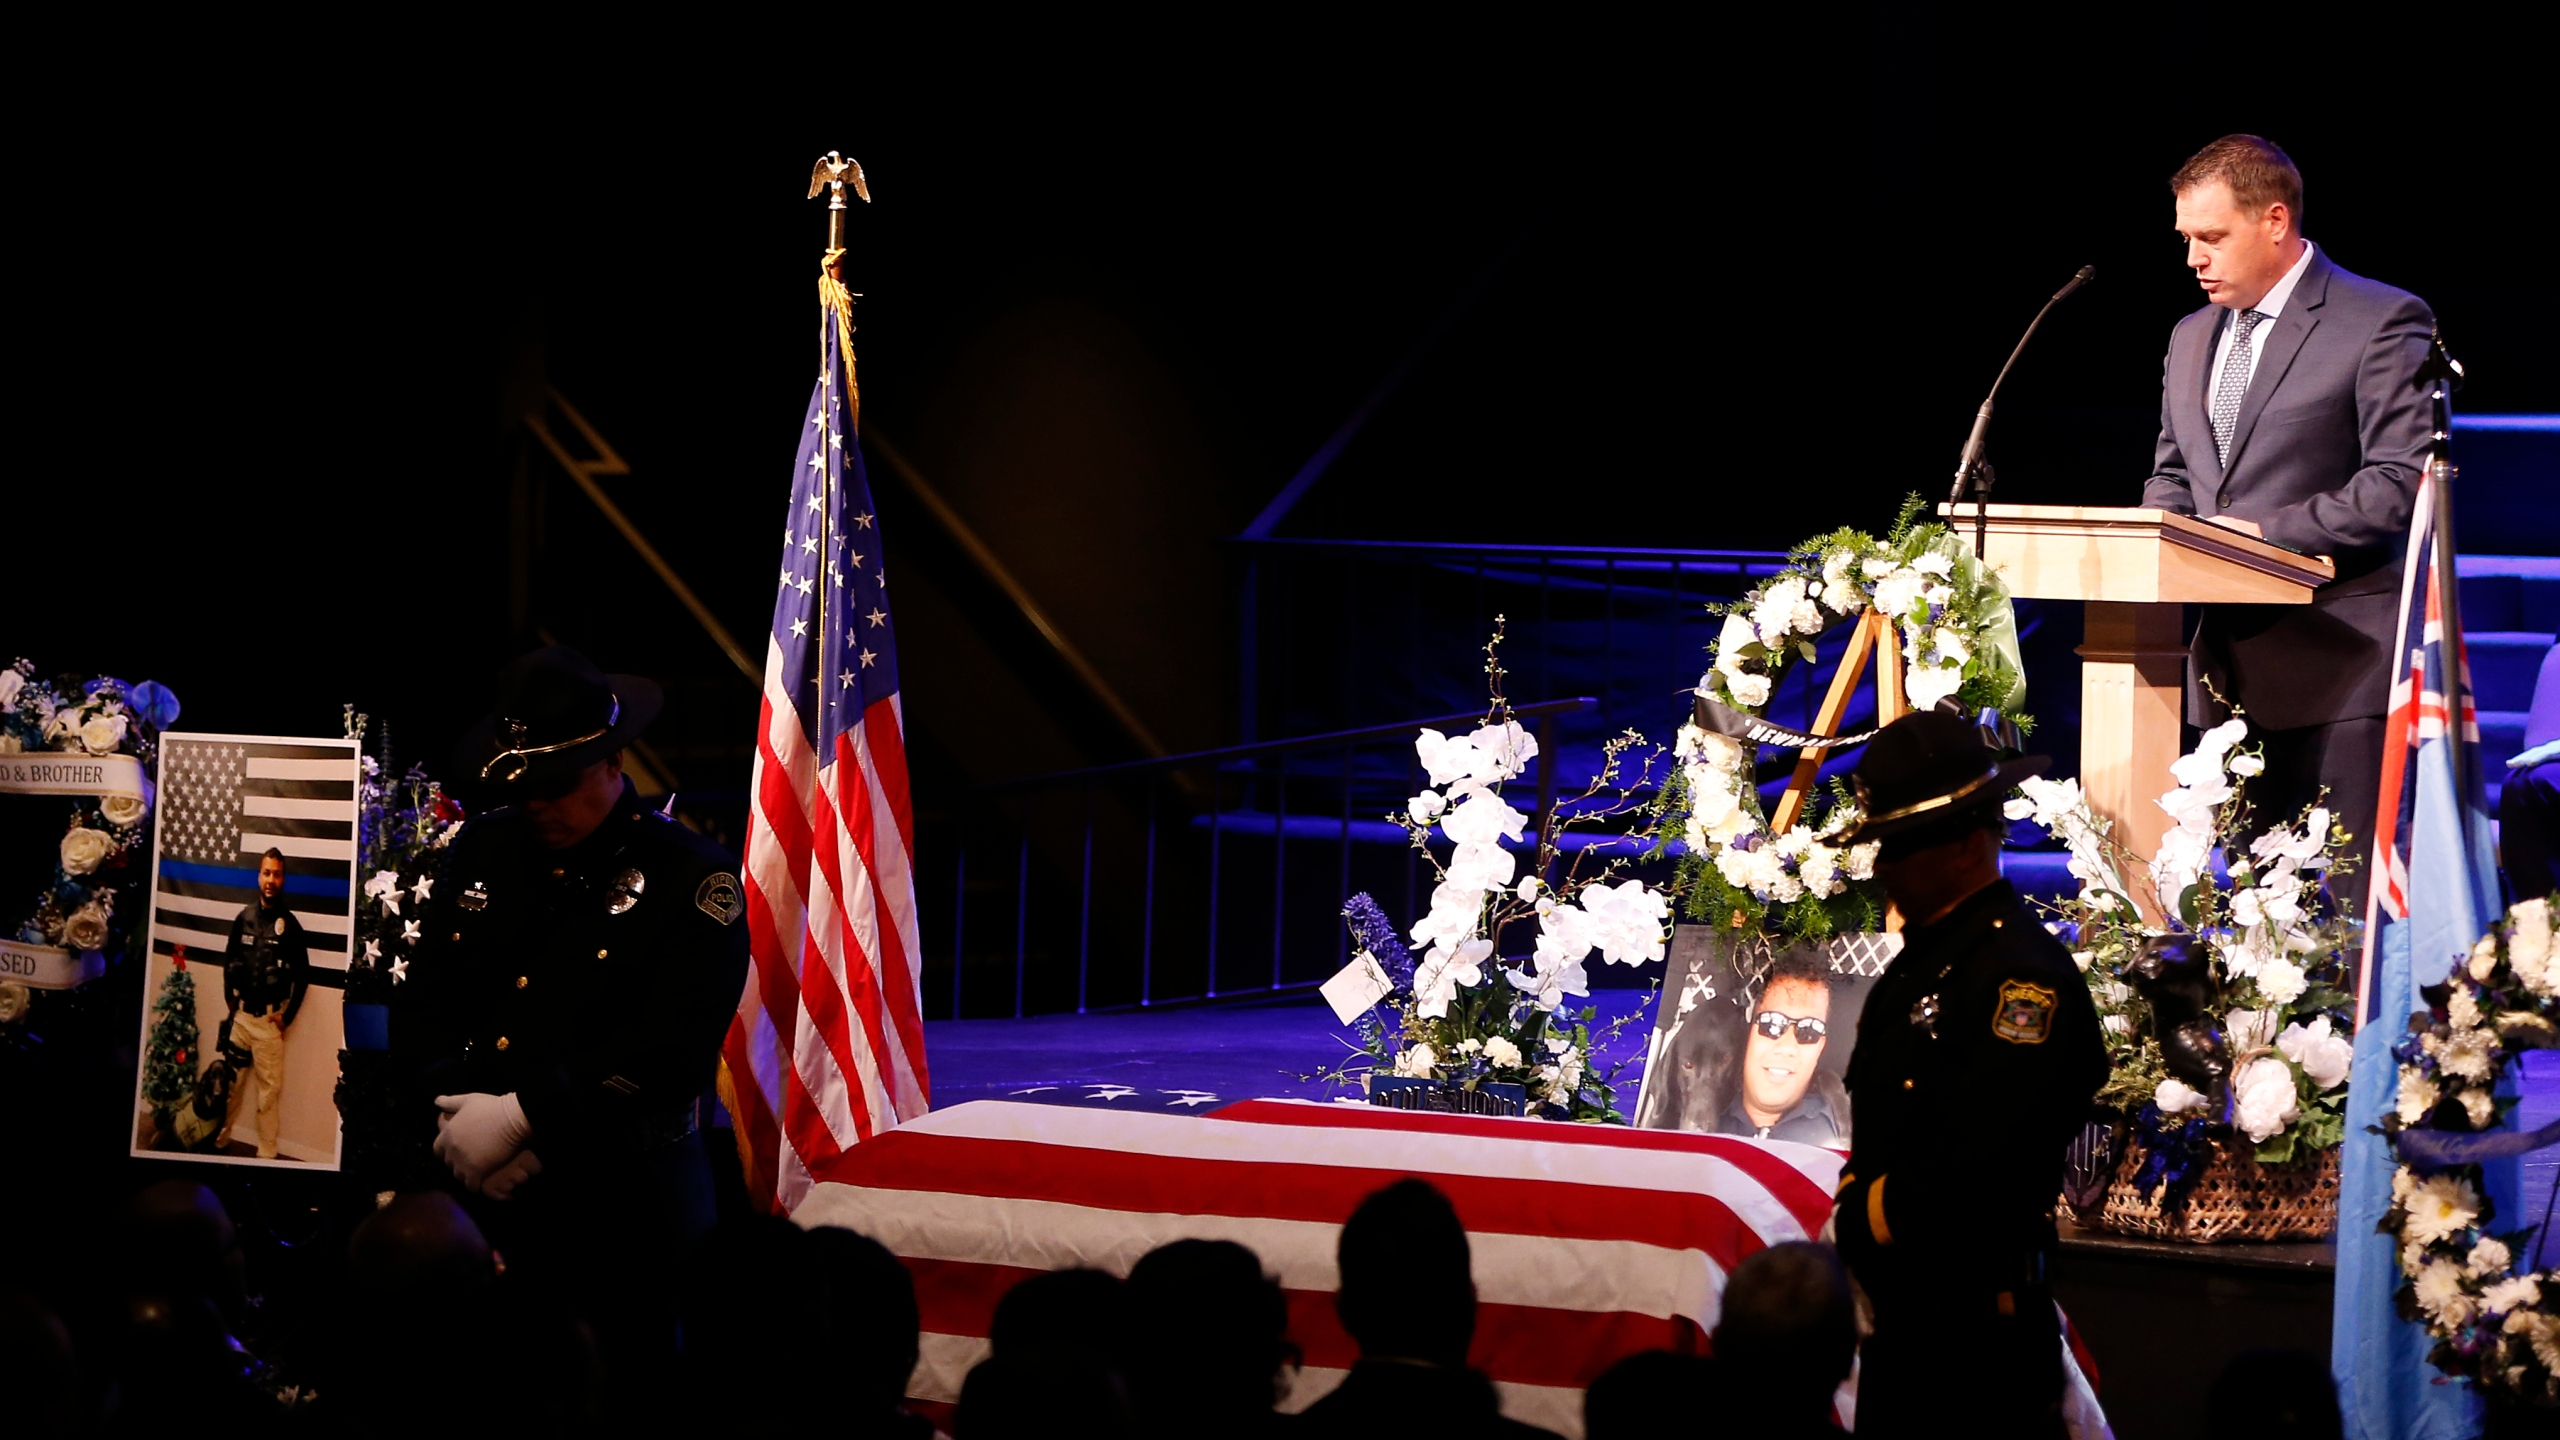 Officer Jeffrey Harmon of the Modesto Police Department speaks as the flag-draped casket of slain Newman police officer Ronil Singh is seen during a funeral service at CrossPoint Community Church on Jan. 5, 2019, in Modesto. (Credit: Stephen Lam/Getty Images)